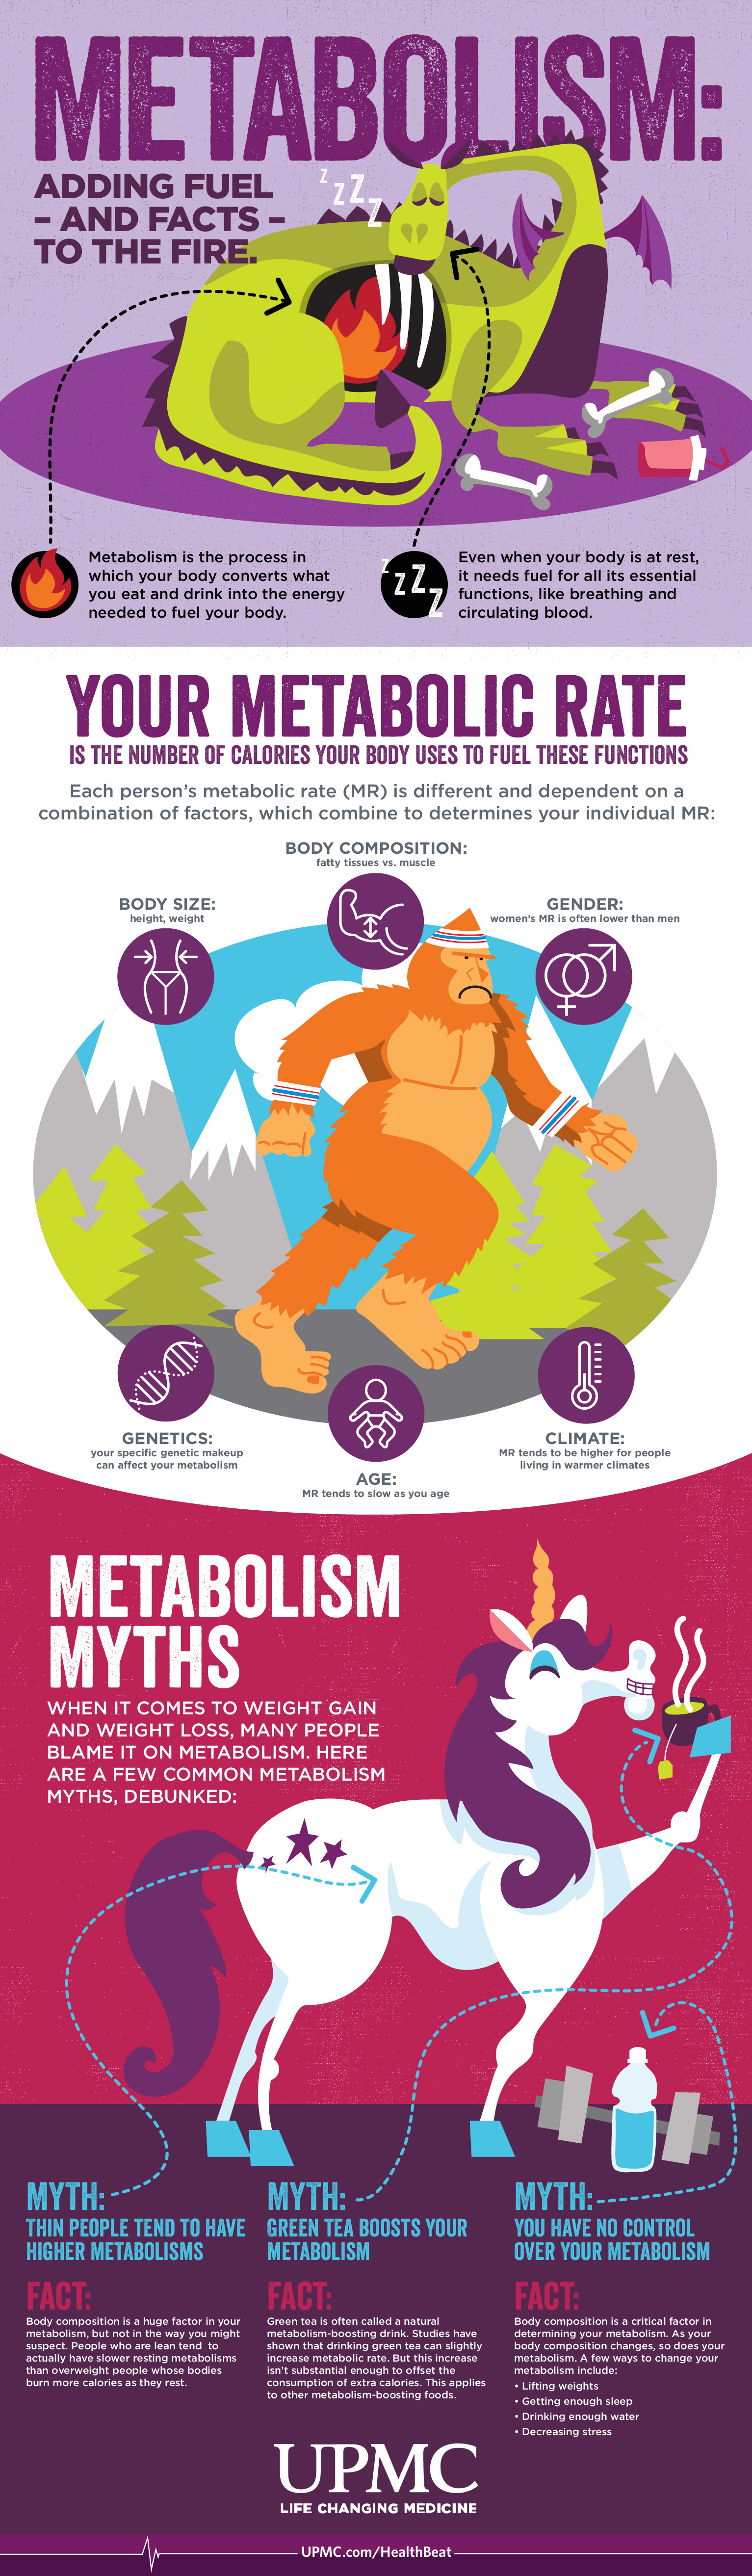 Learn more about how your metabolism functions